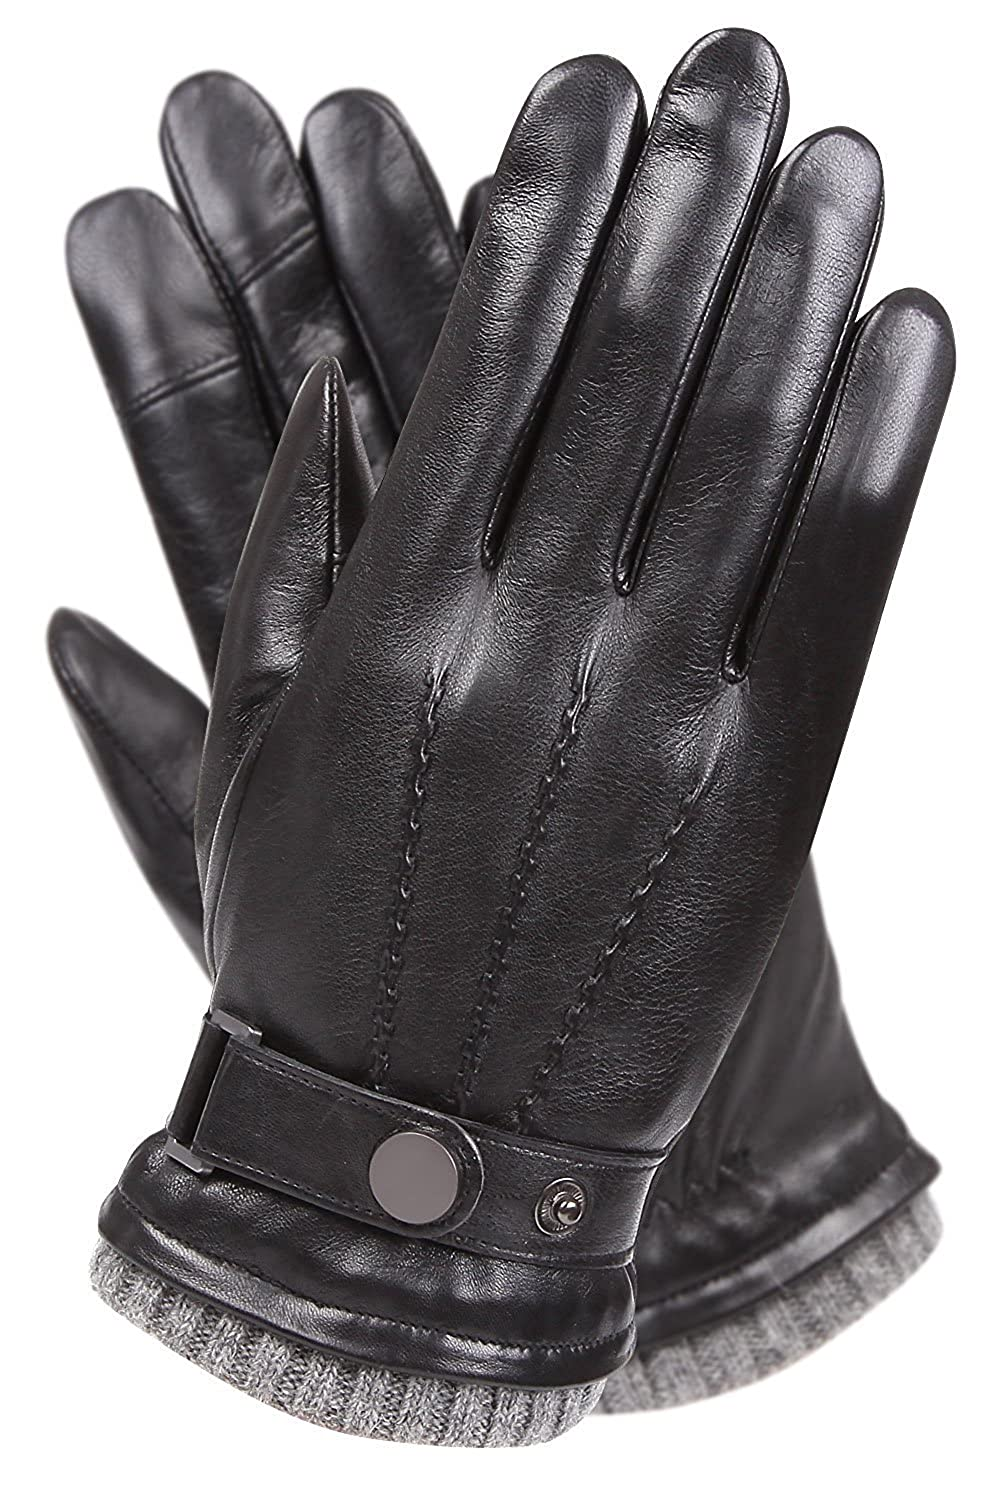 Warmen's Winter Nappa Leather